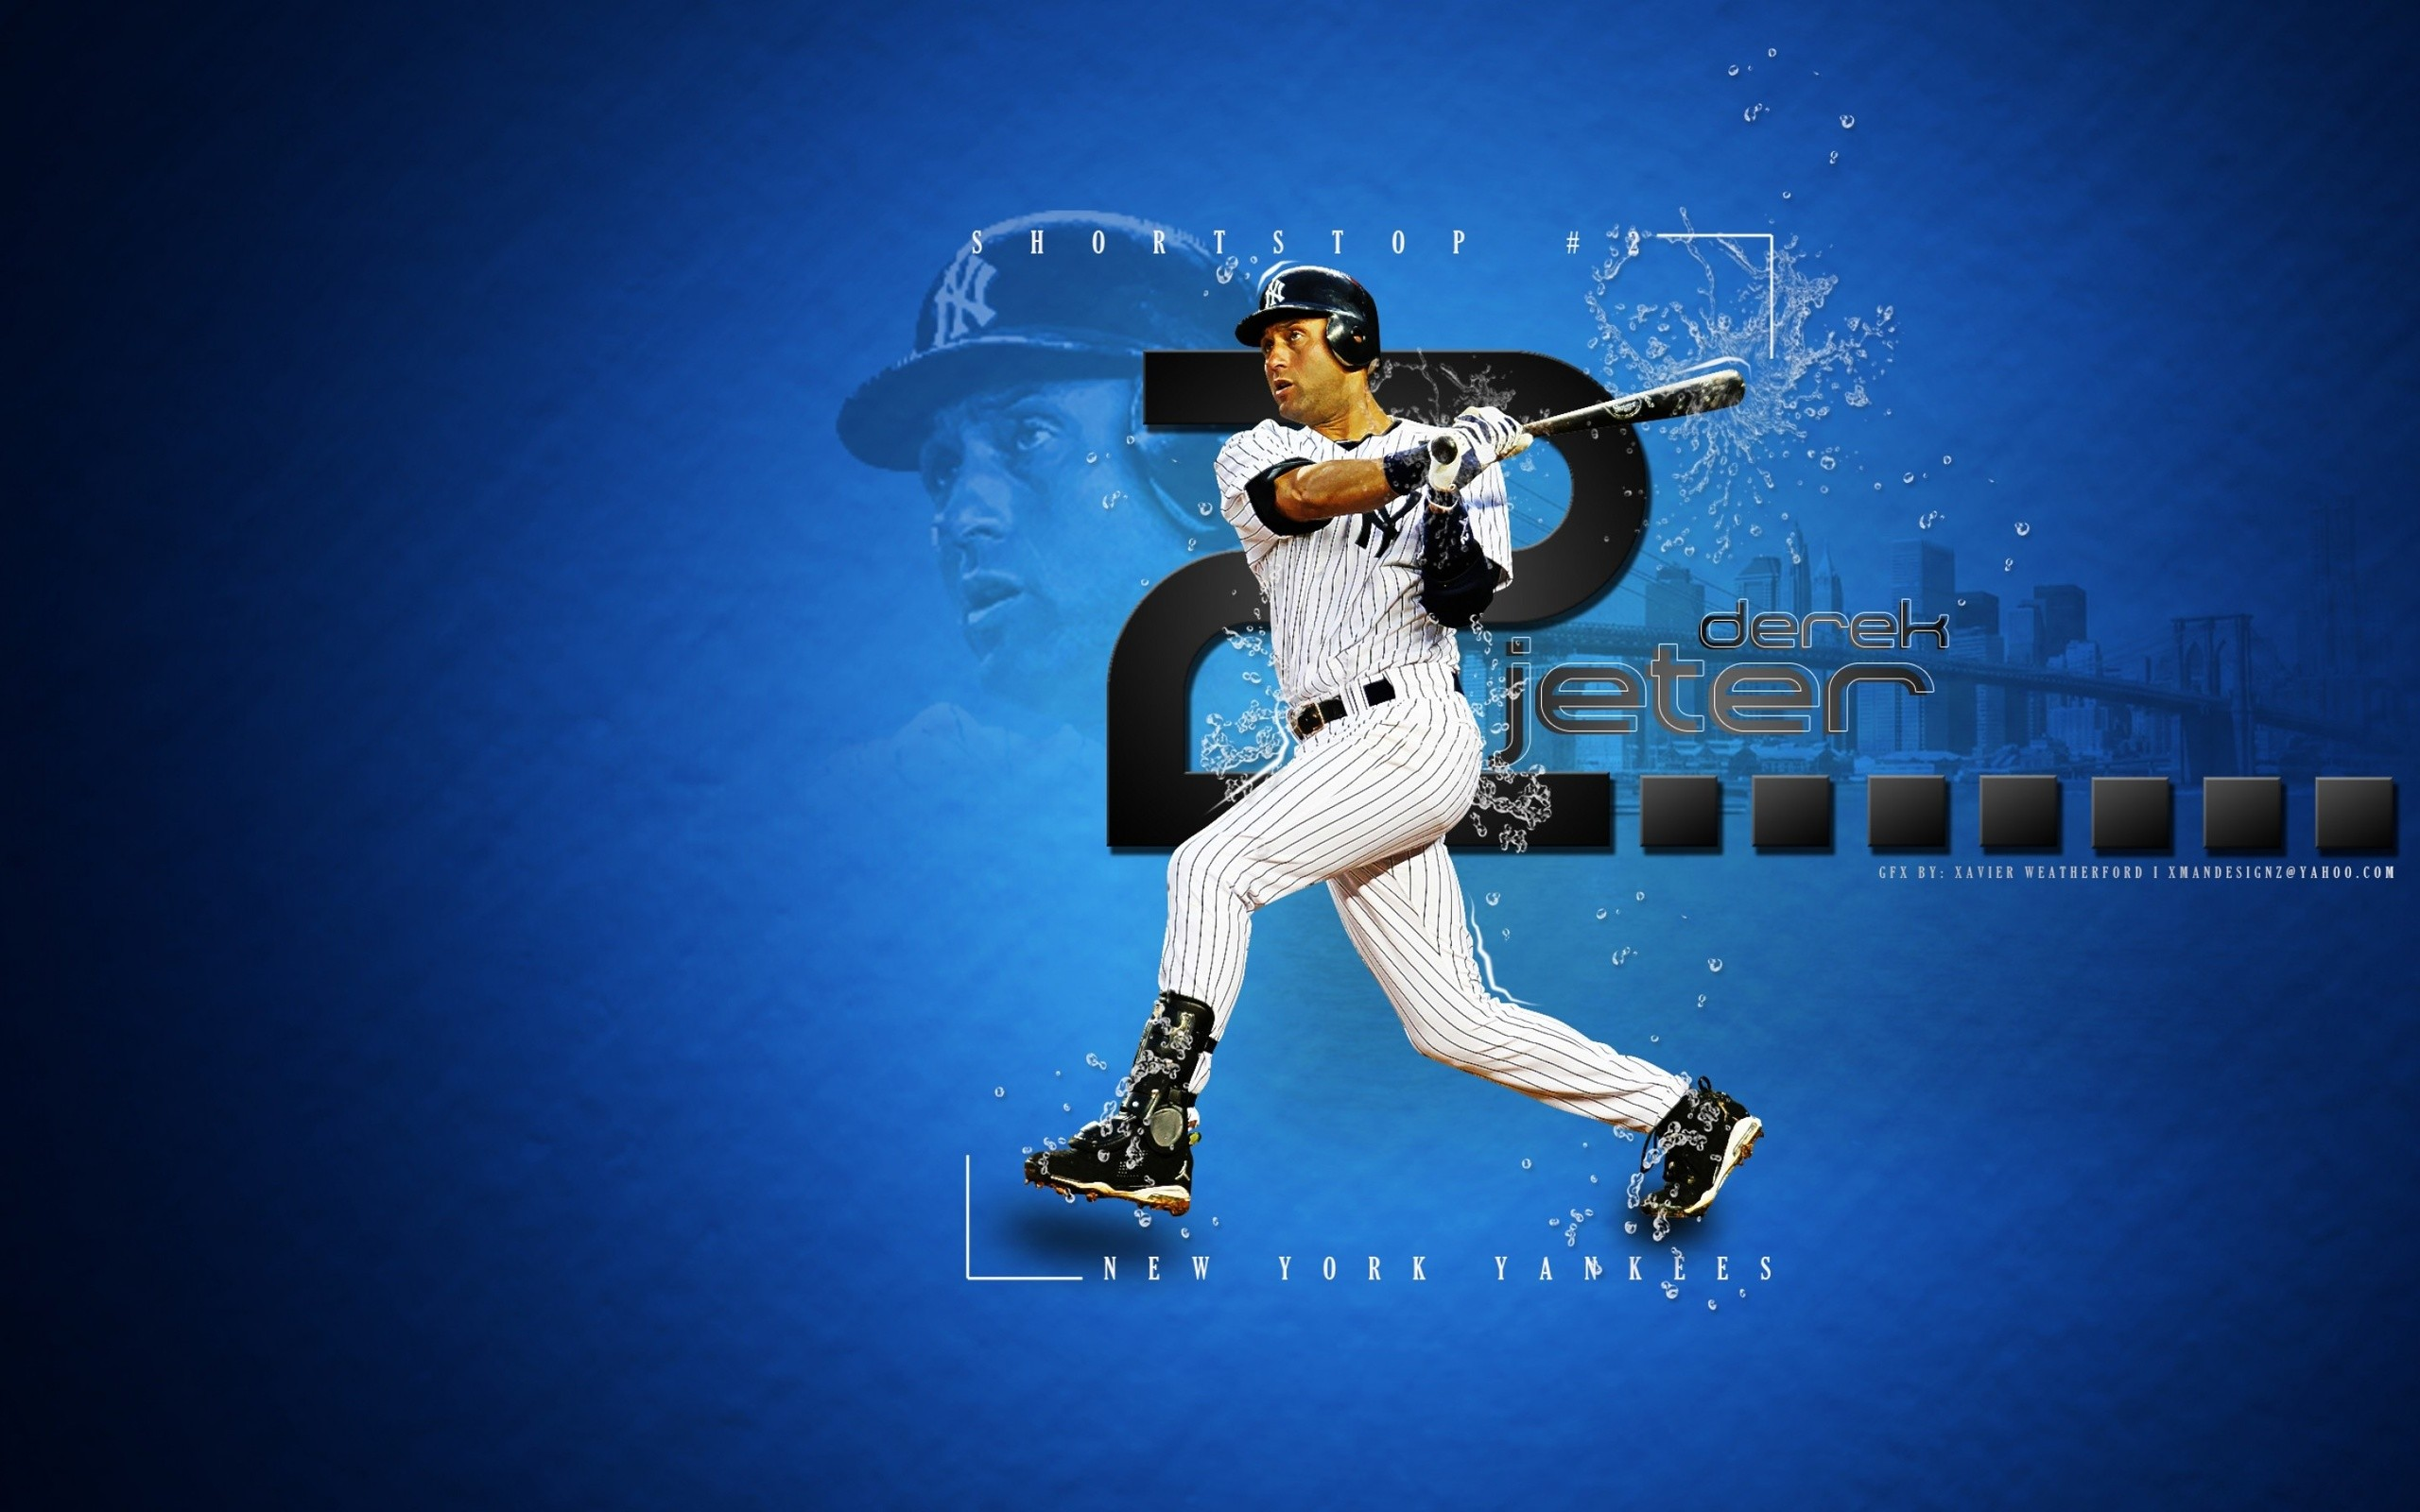 Res: 2560x1600, Baseball, Ny Yankees, New York Yankees, Derek Jeter, Mlb, Baseball Player